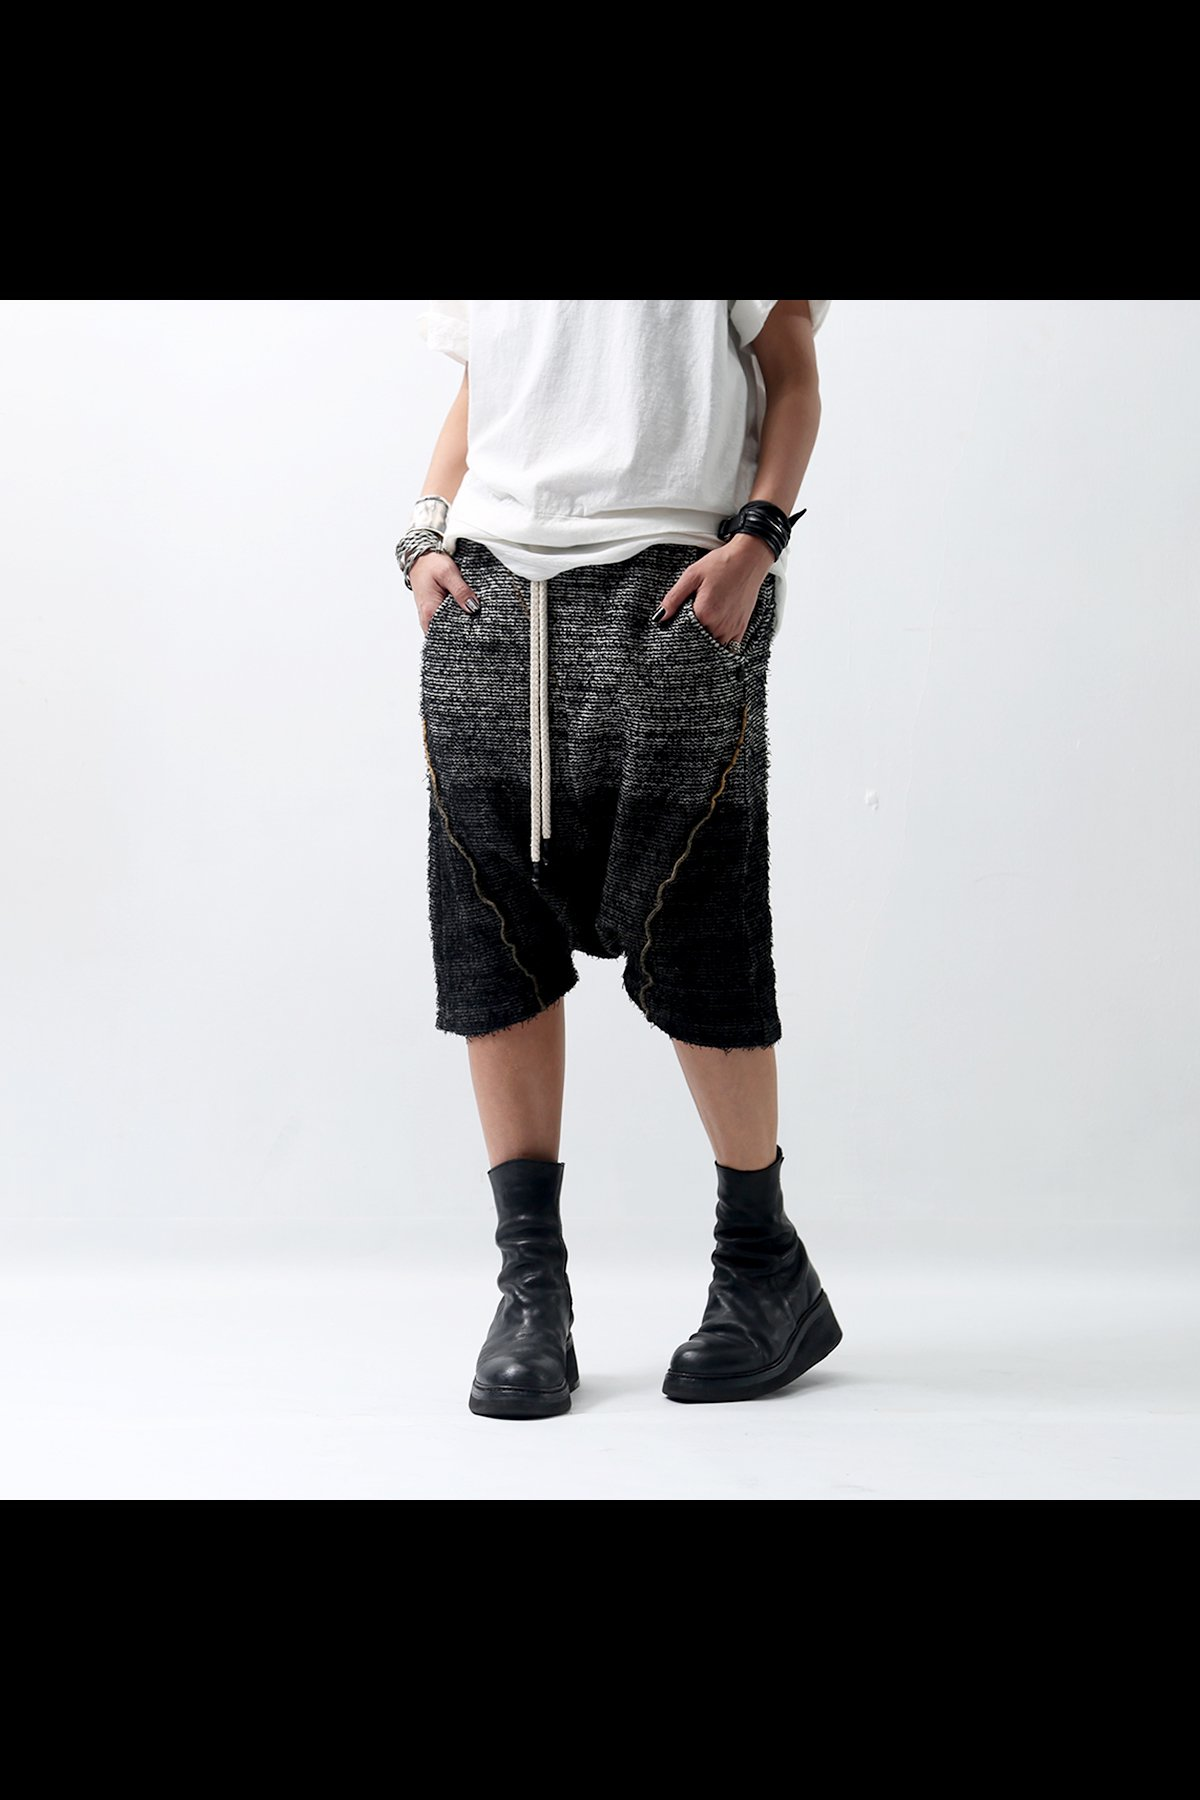 <img class='new_mark_img1' src='https://img.shop-pro.jp/img/new/icons8.gif' style='border:none;display:inline;margin:0px;padding:0px;width:auto;' />STRETCH SARROUEL PANTS P21_BLACK DEGRADE